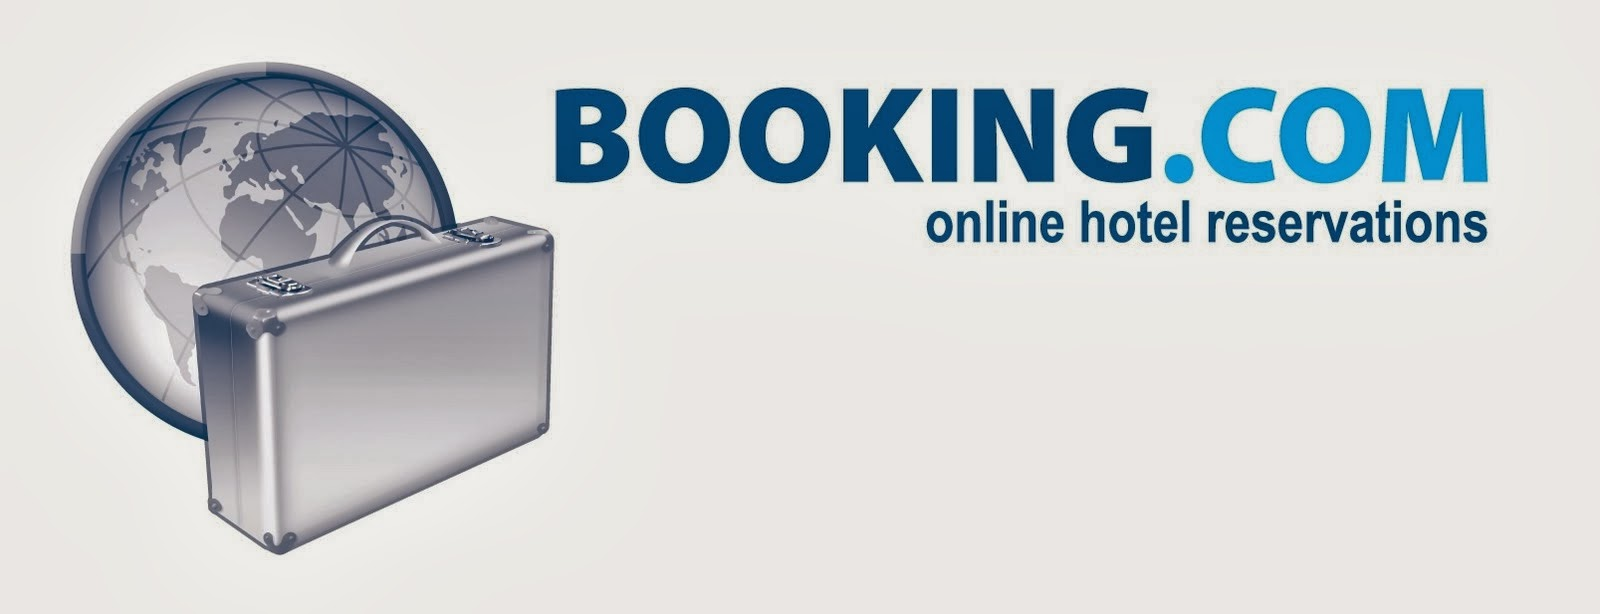 Https Booking Melia Com En New Search Rooms And Rates Htm